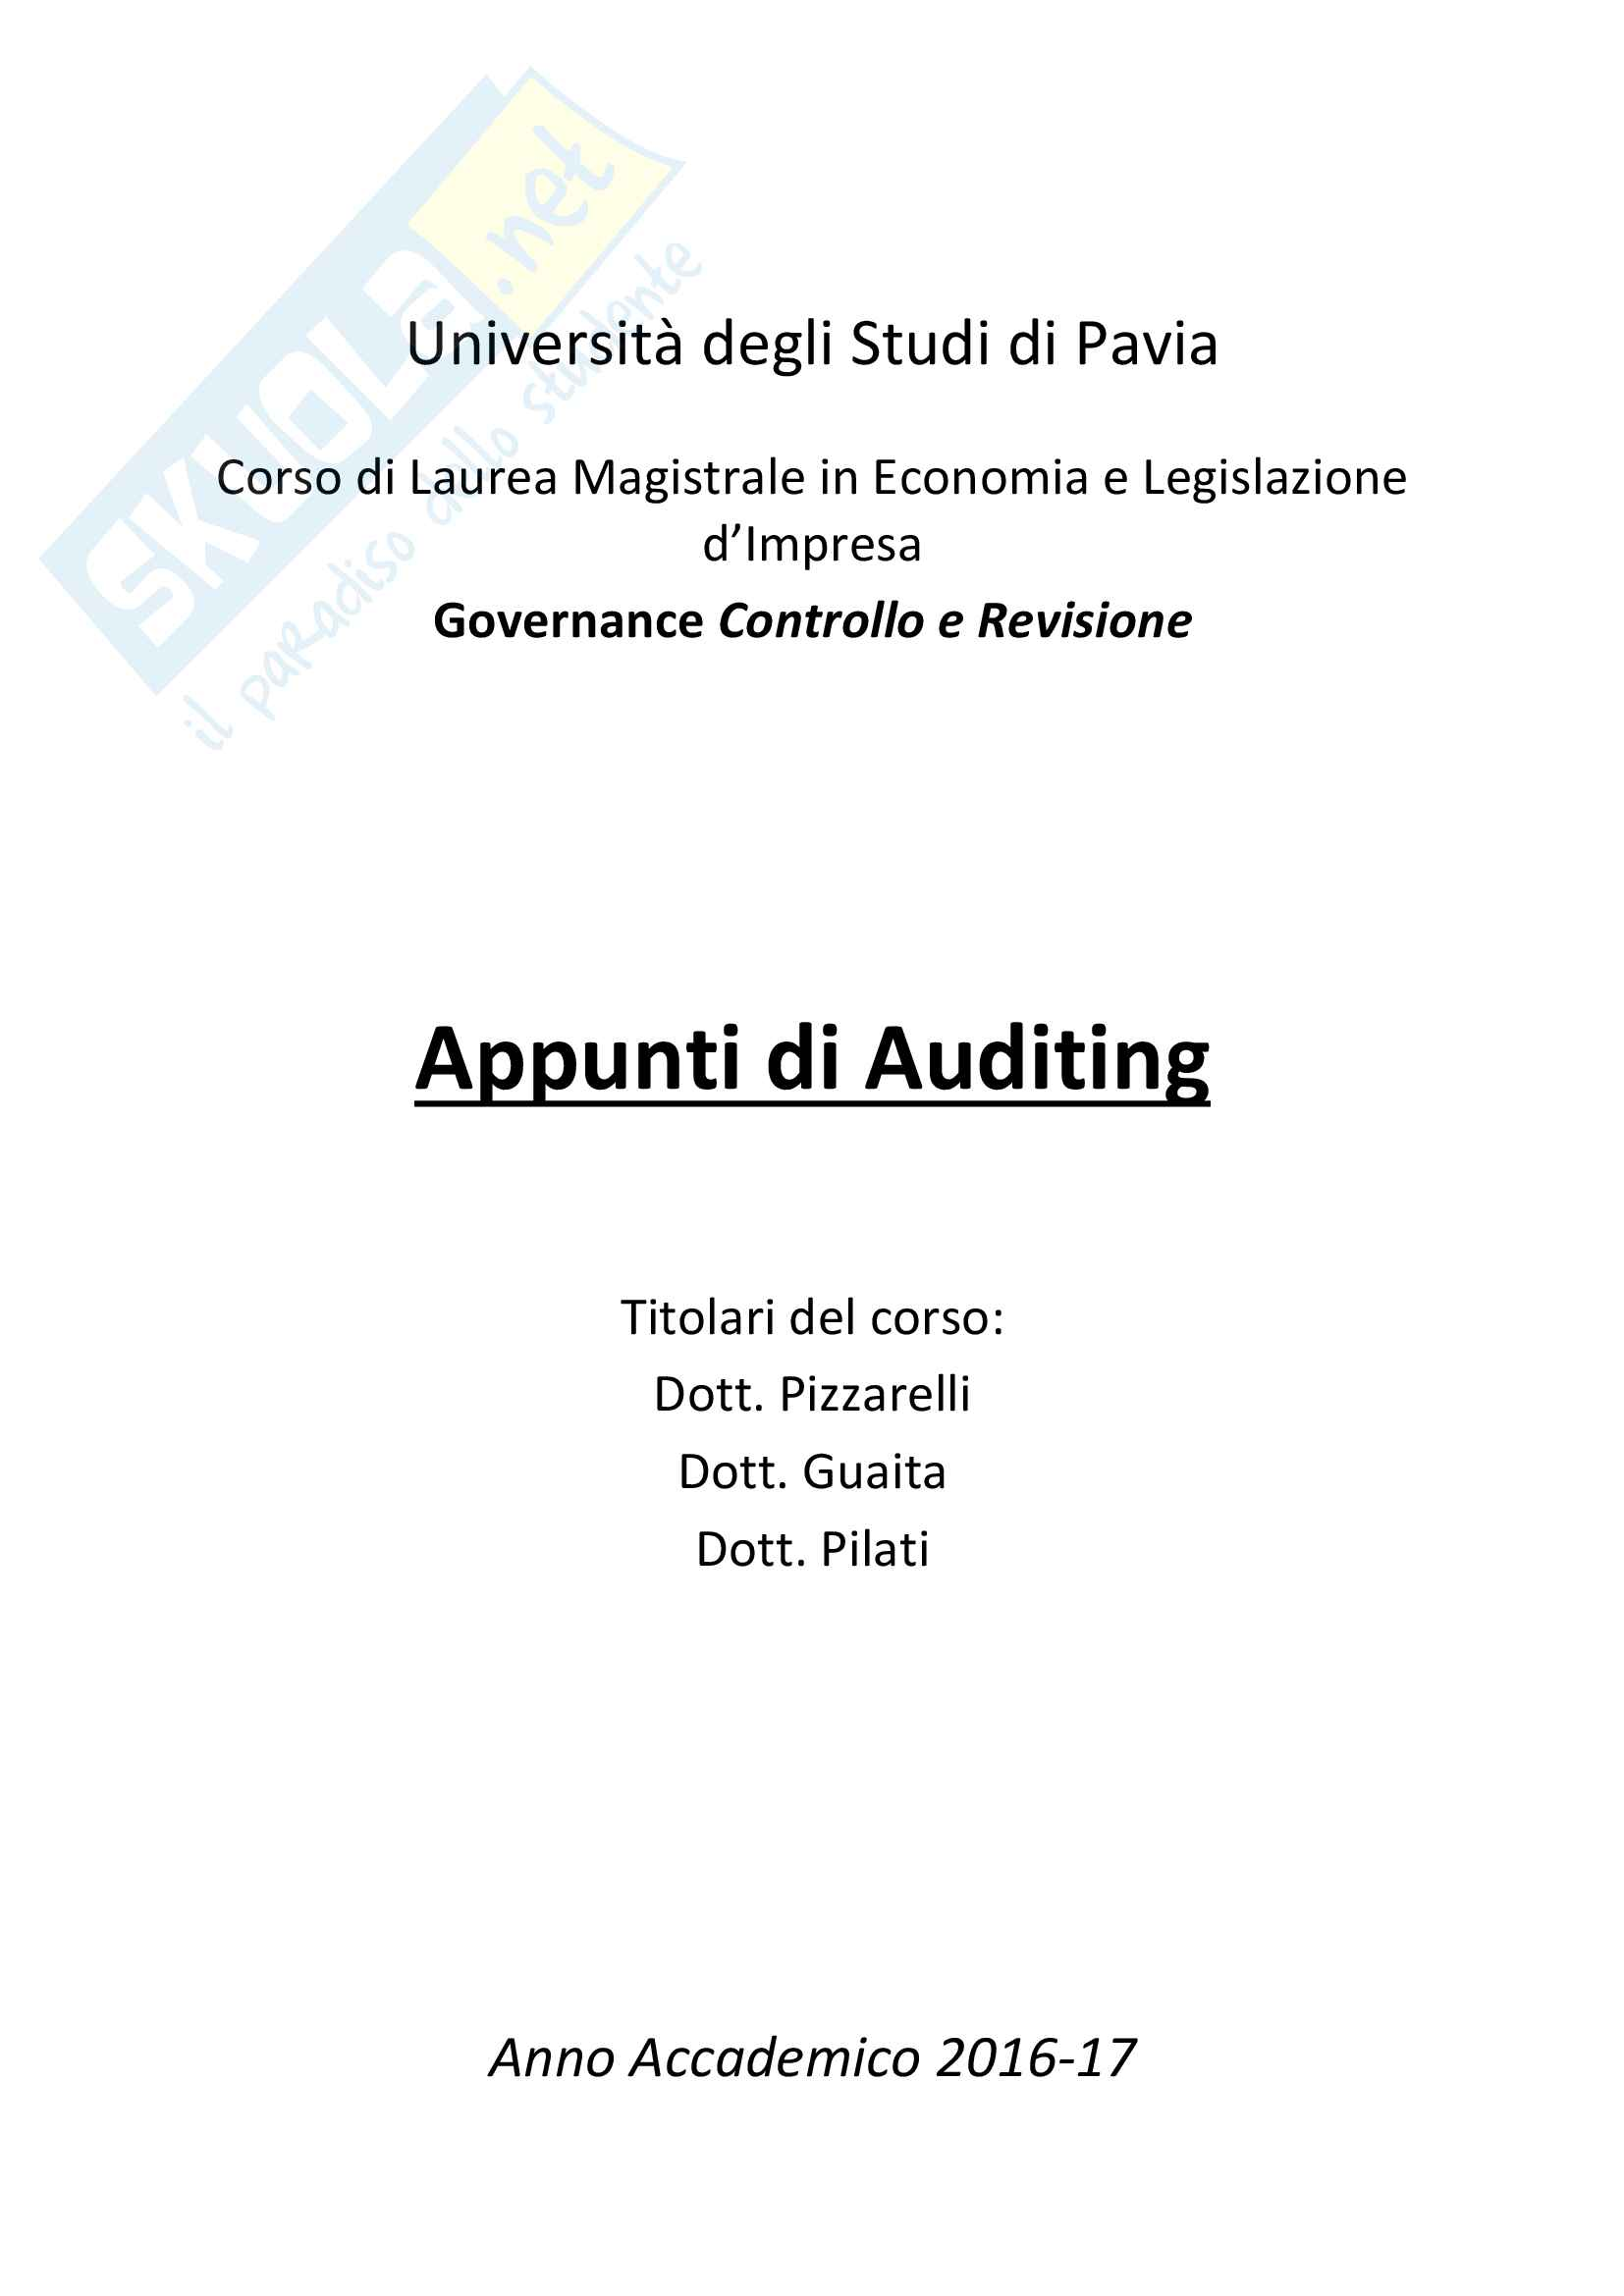 Appunti Auditing